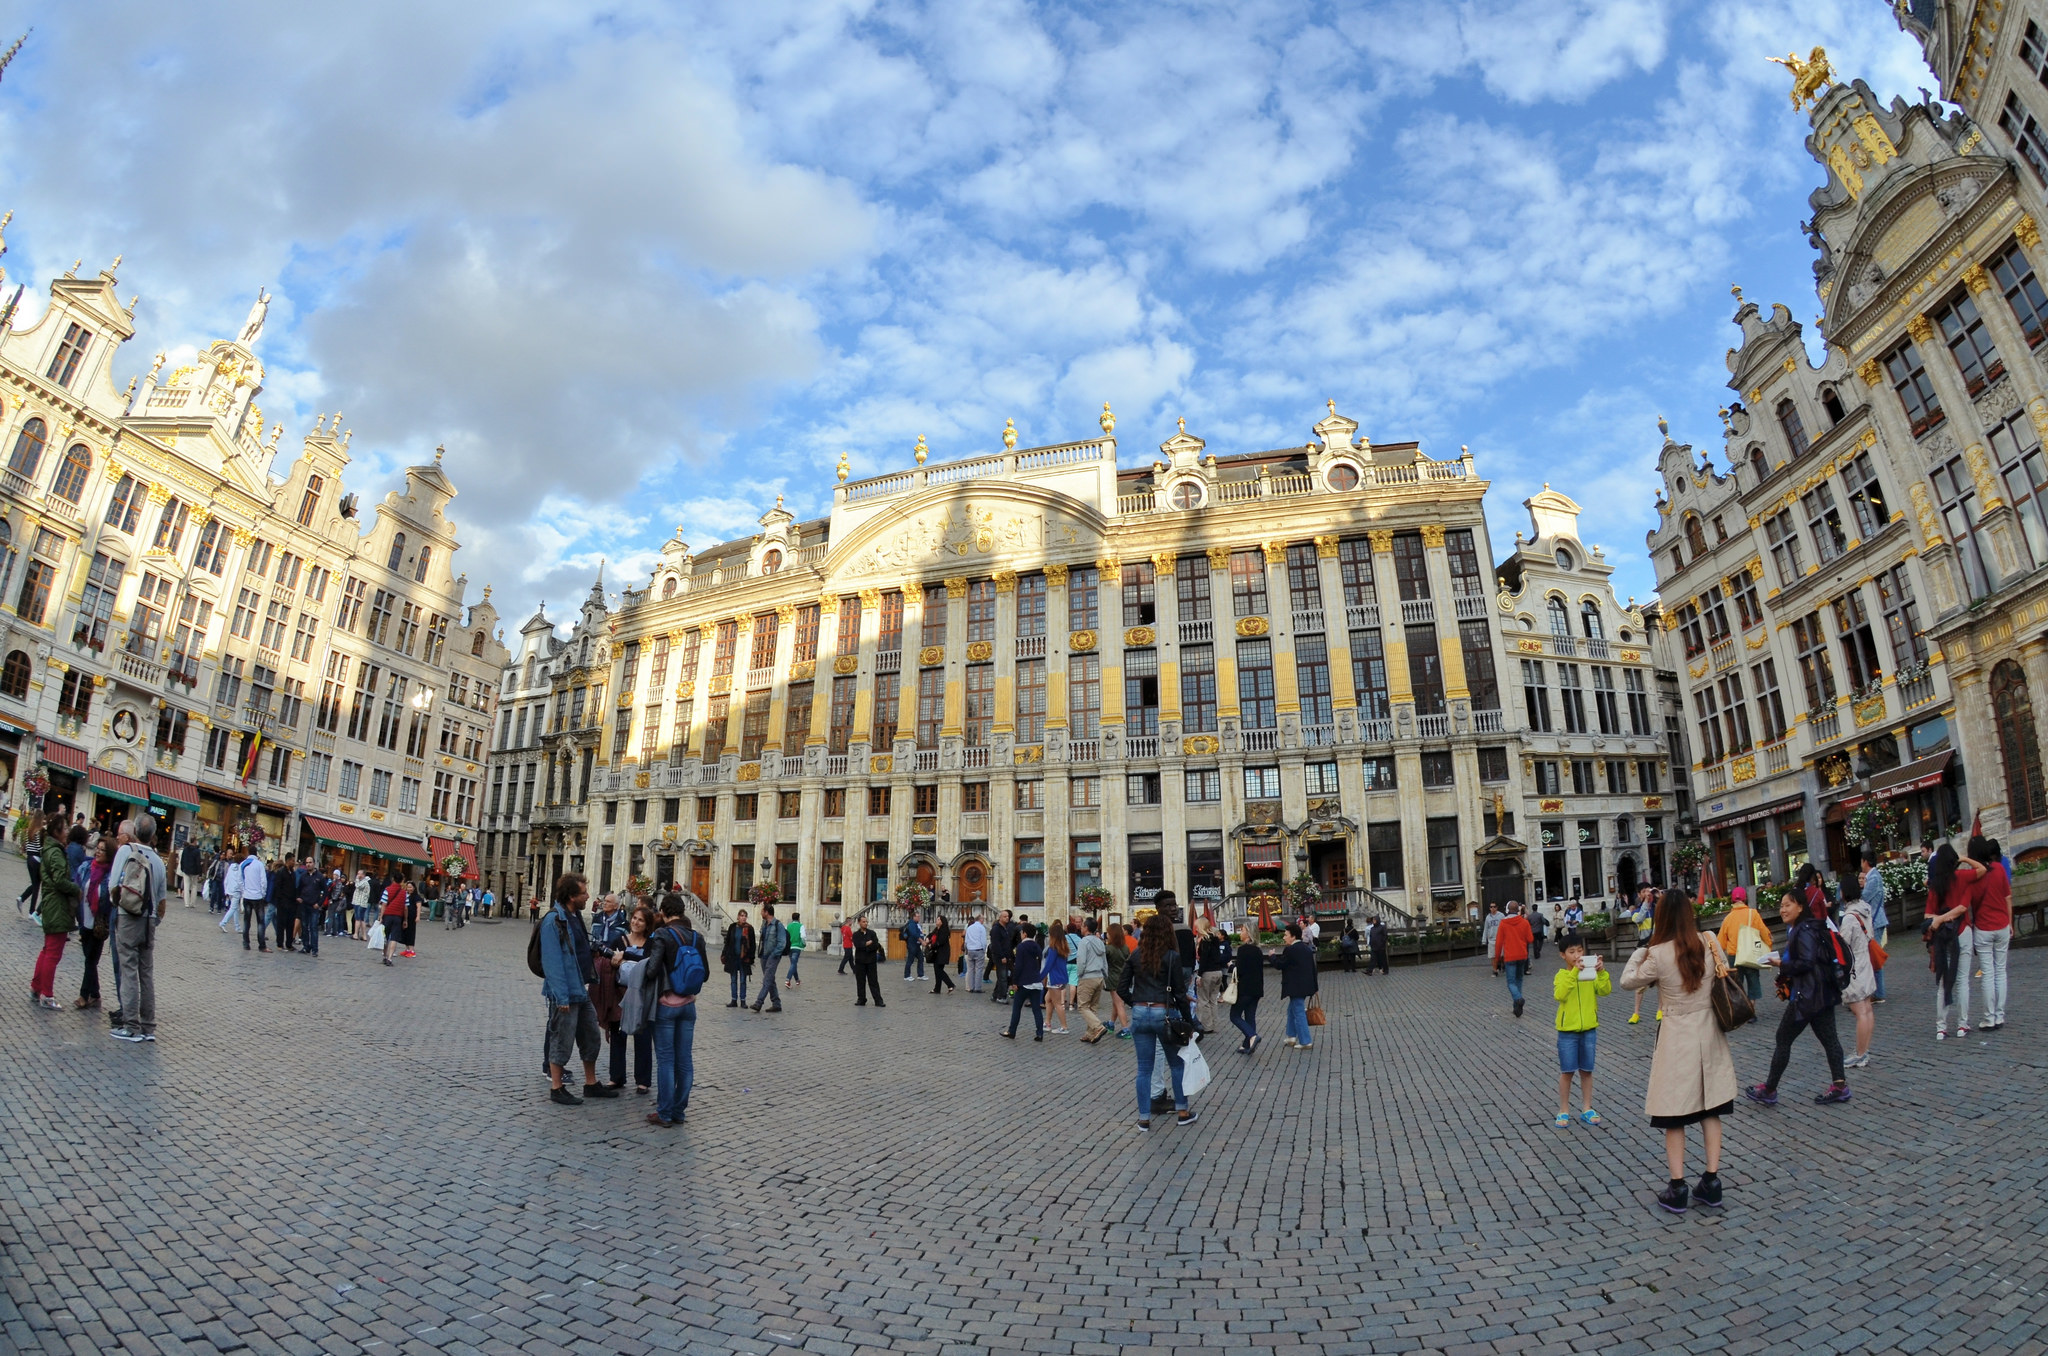 Stunning Architecture at Grand Place